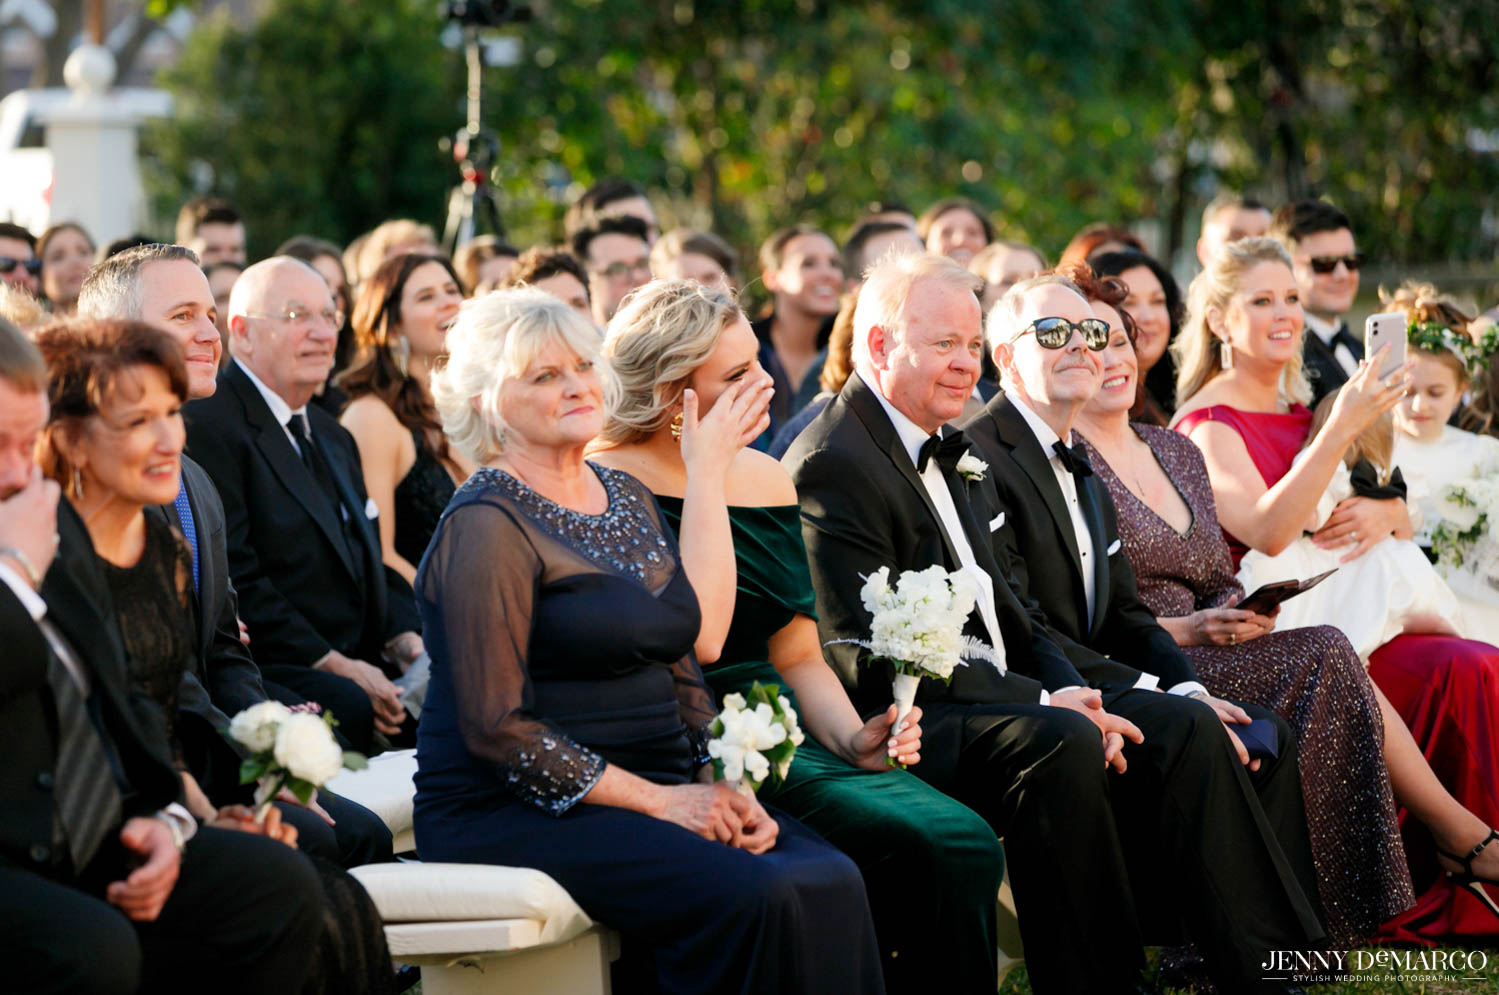 guests becoming emotional during ceremony